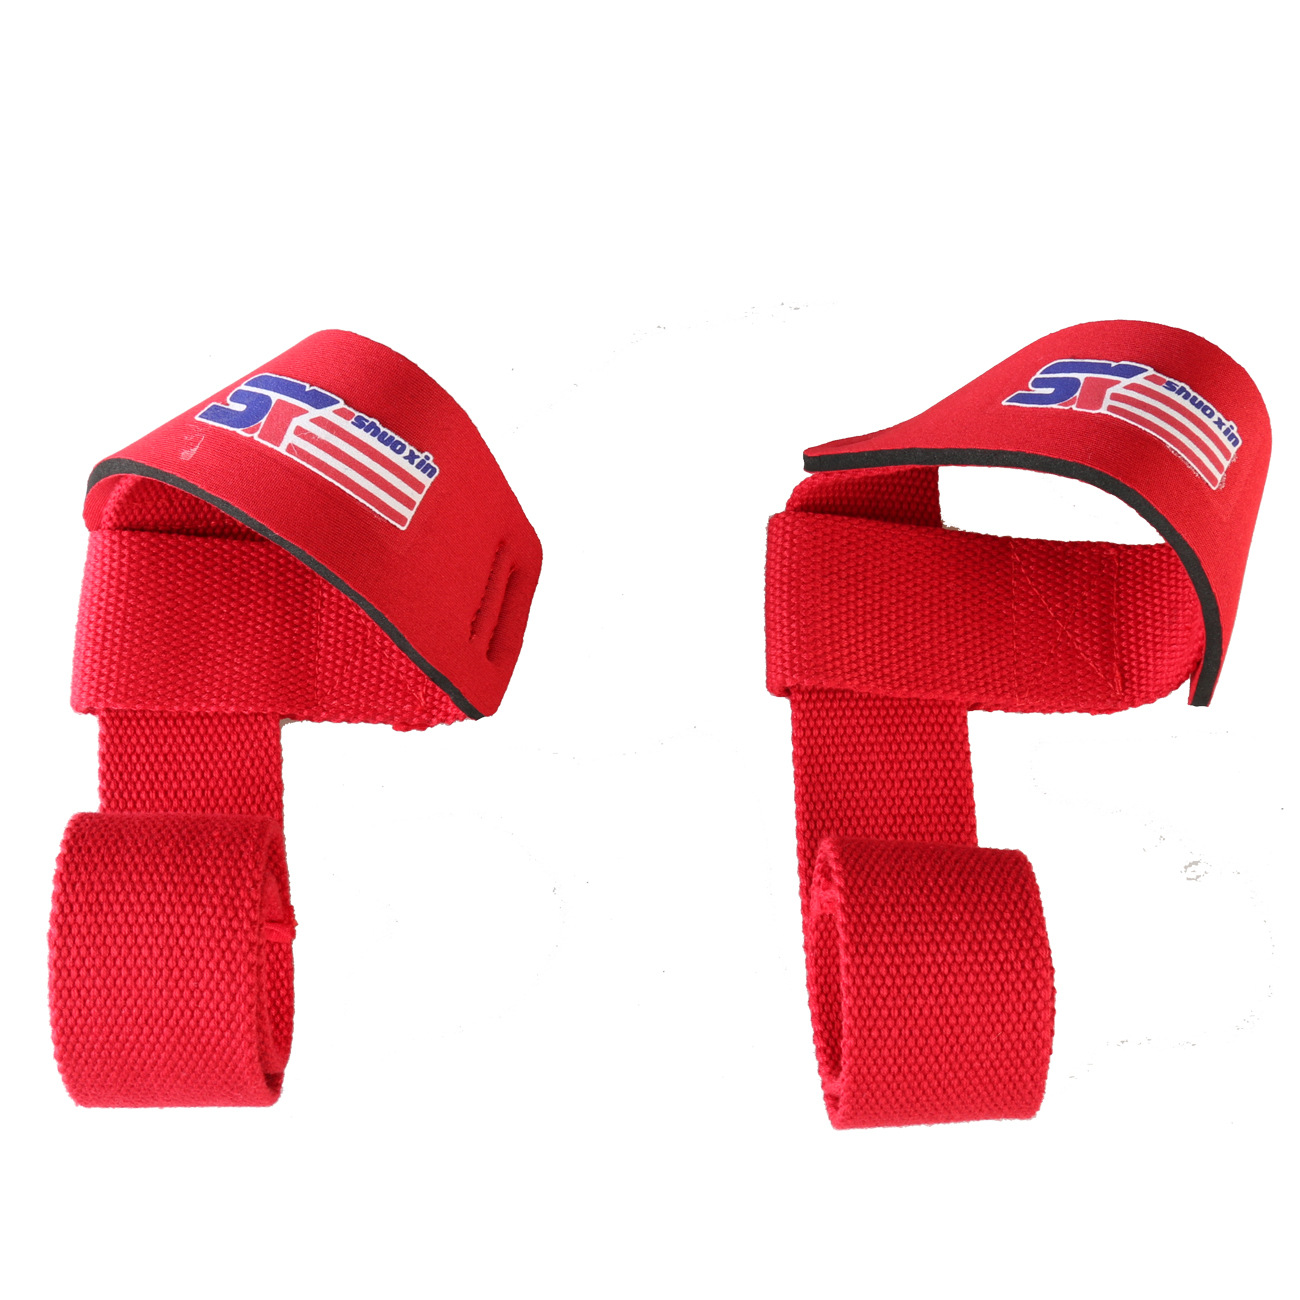 Shuo Xin Sports Weightlifting Webbing Wrist Protector Sx311 Red One Pair Of Dress